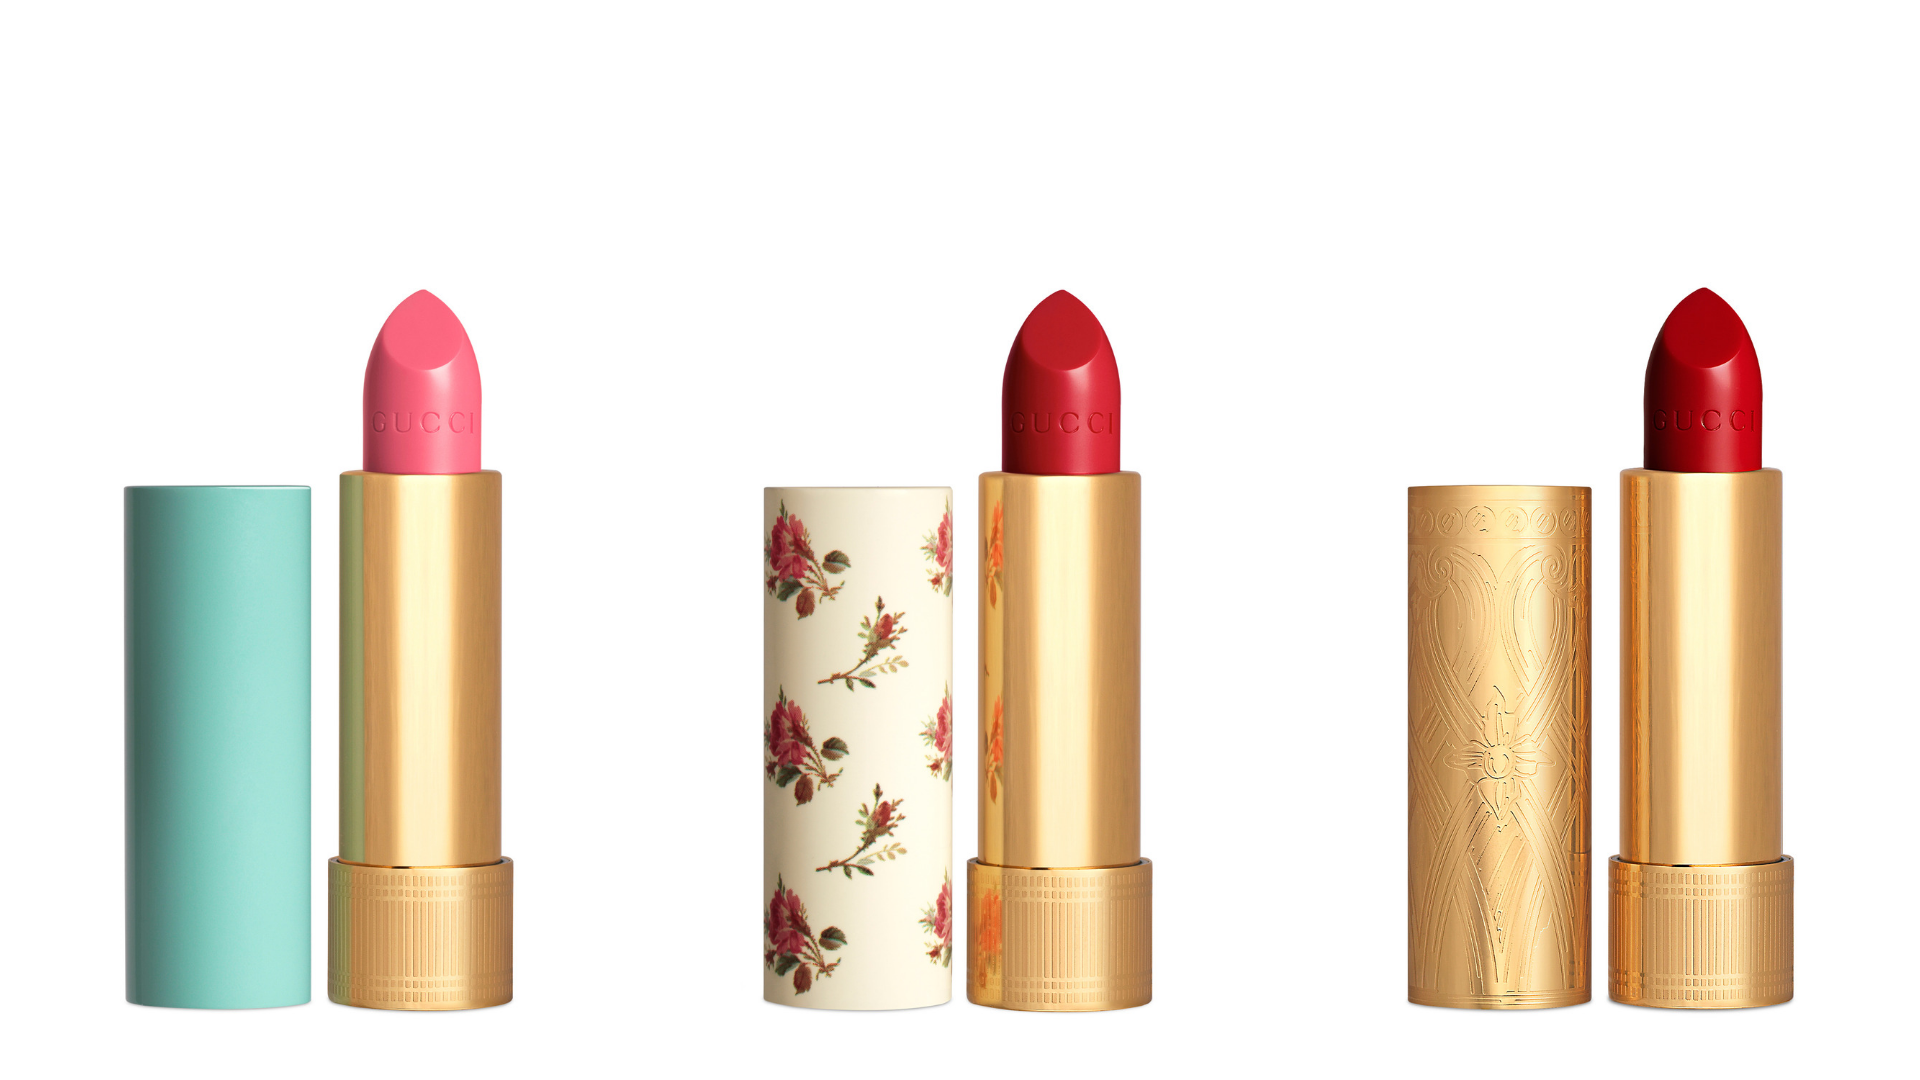 Alessandro Michele's Debut Collection Of Lipsticks For Gucci Has Just Dropped